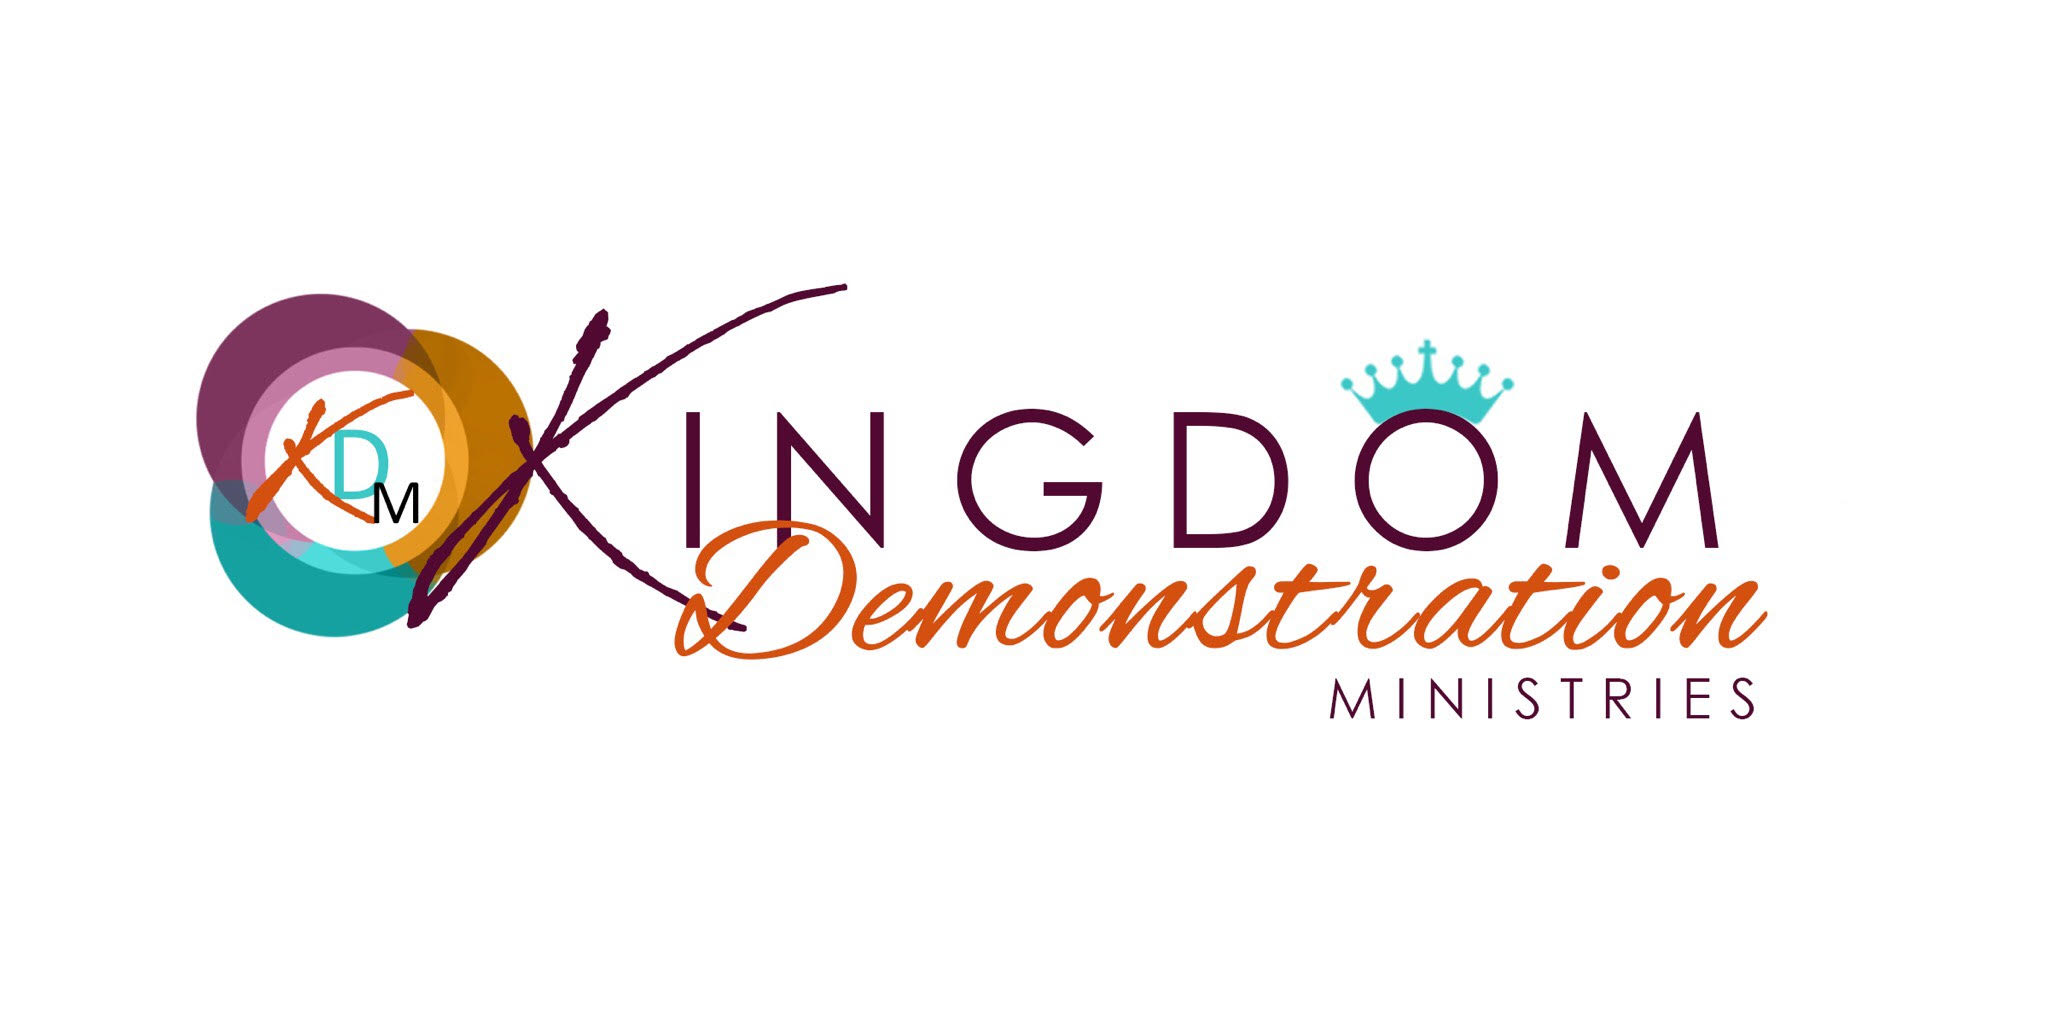 Kingdom Demonstration Ministries